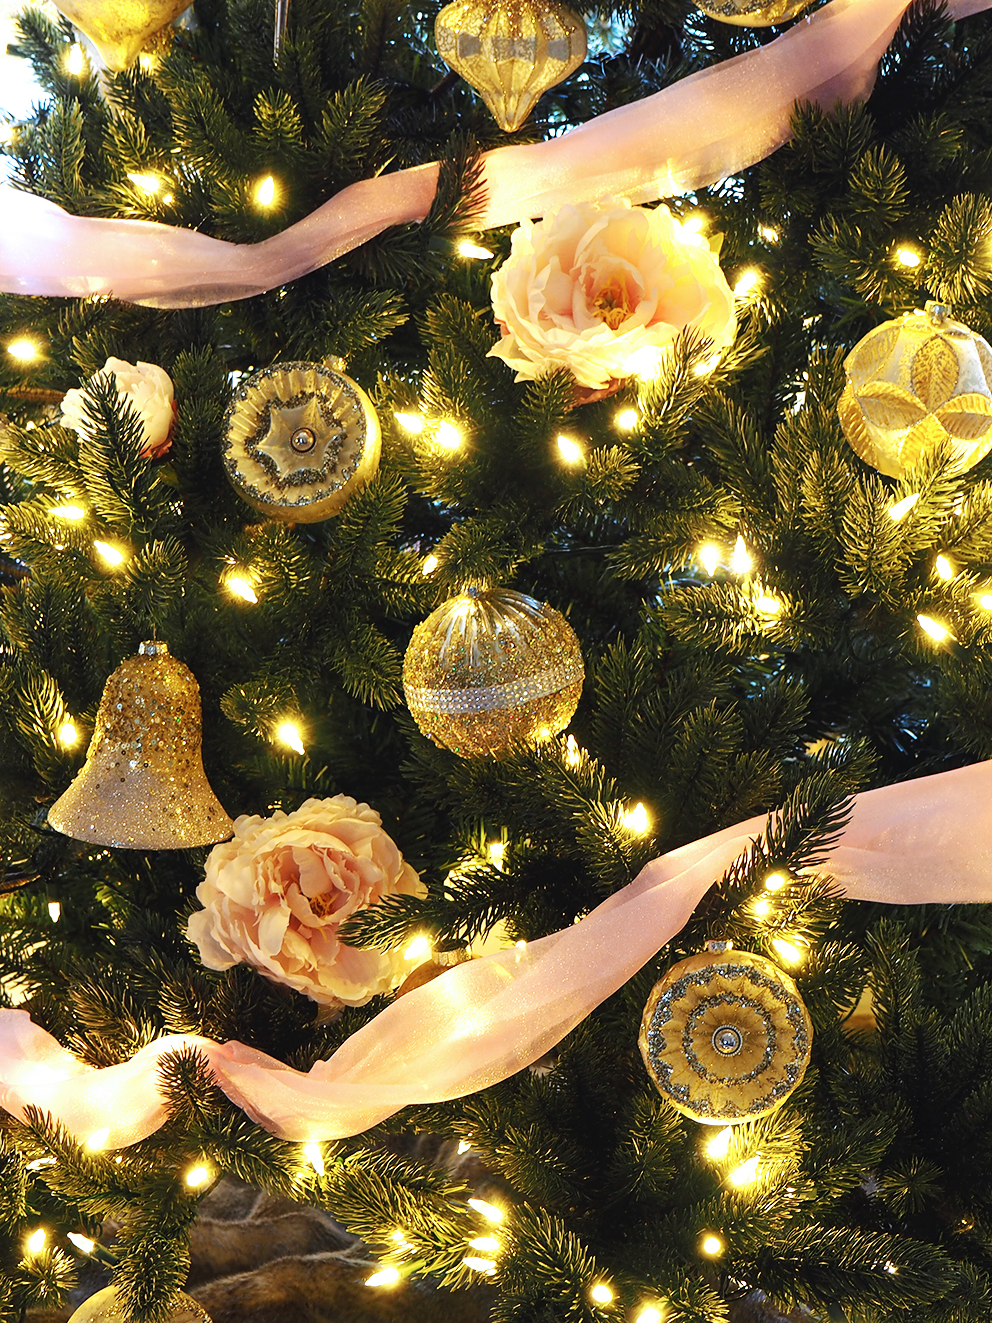 French For Pineapple Blog - Trees & Baubles Balsam Hill Christmas Blog Hop - close up of gold glitter christmas tree decorations and baubles with pale pink organza ribbon and pale pink peonies and fairy lights